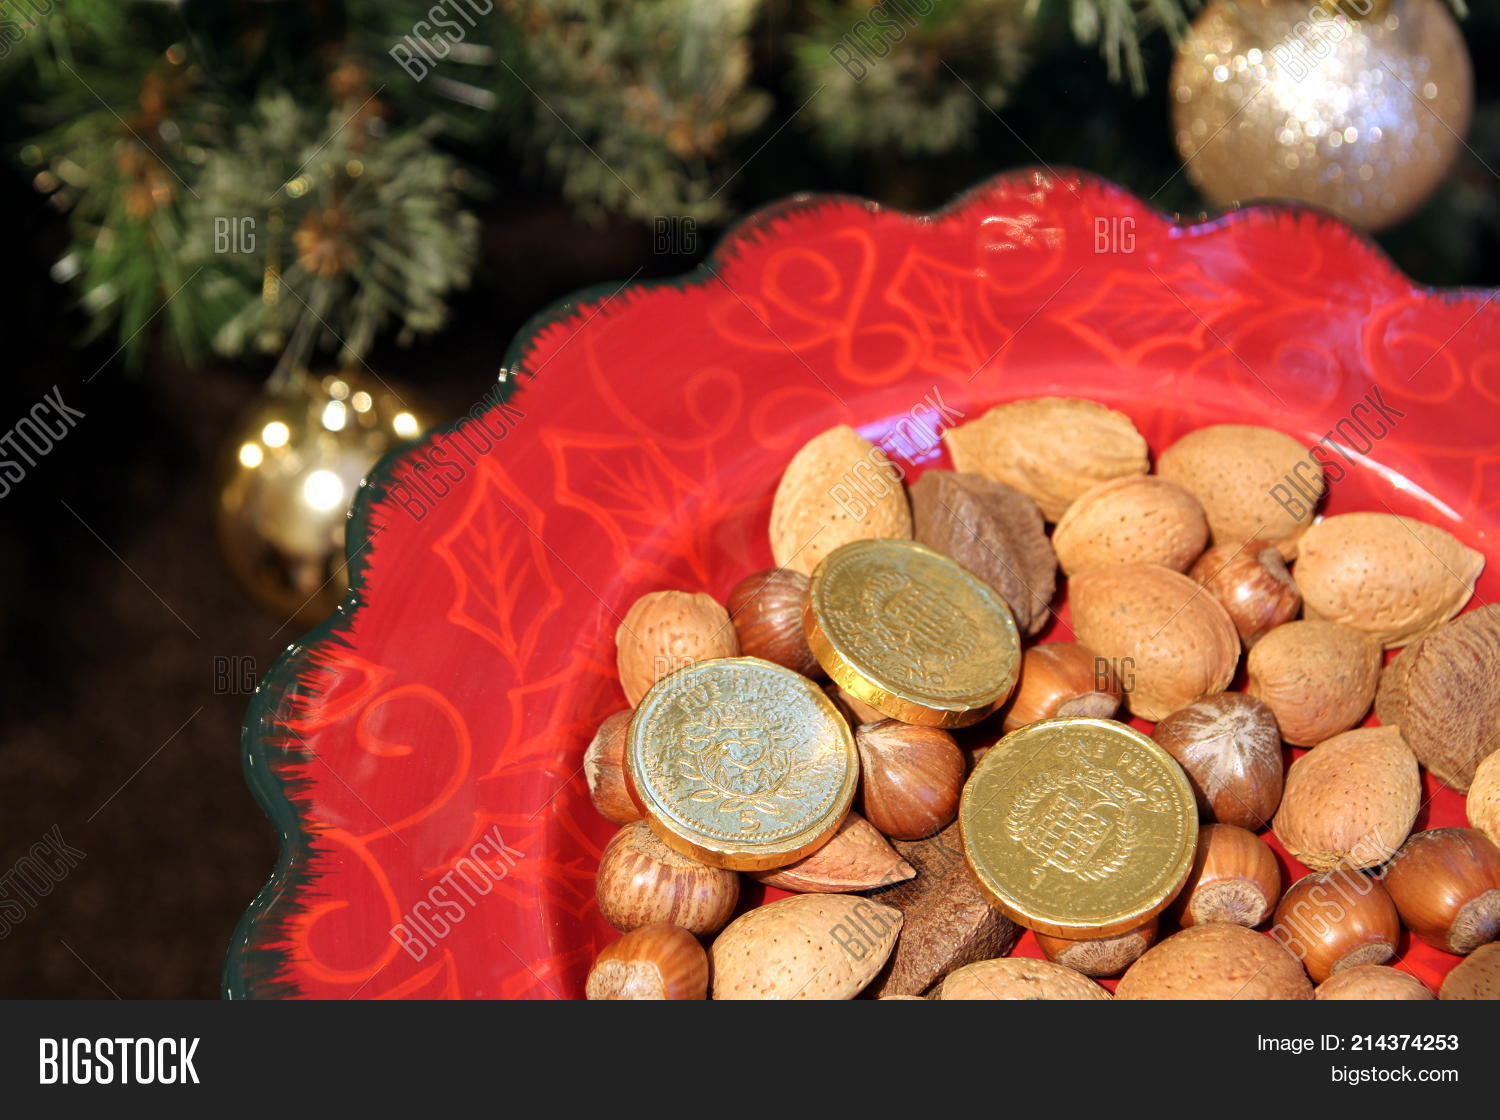 pretty red christmas plate with traditional festive almonds hazelnuts and brazil nuts and chocolat - Christmas Traditions In Brazil